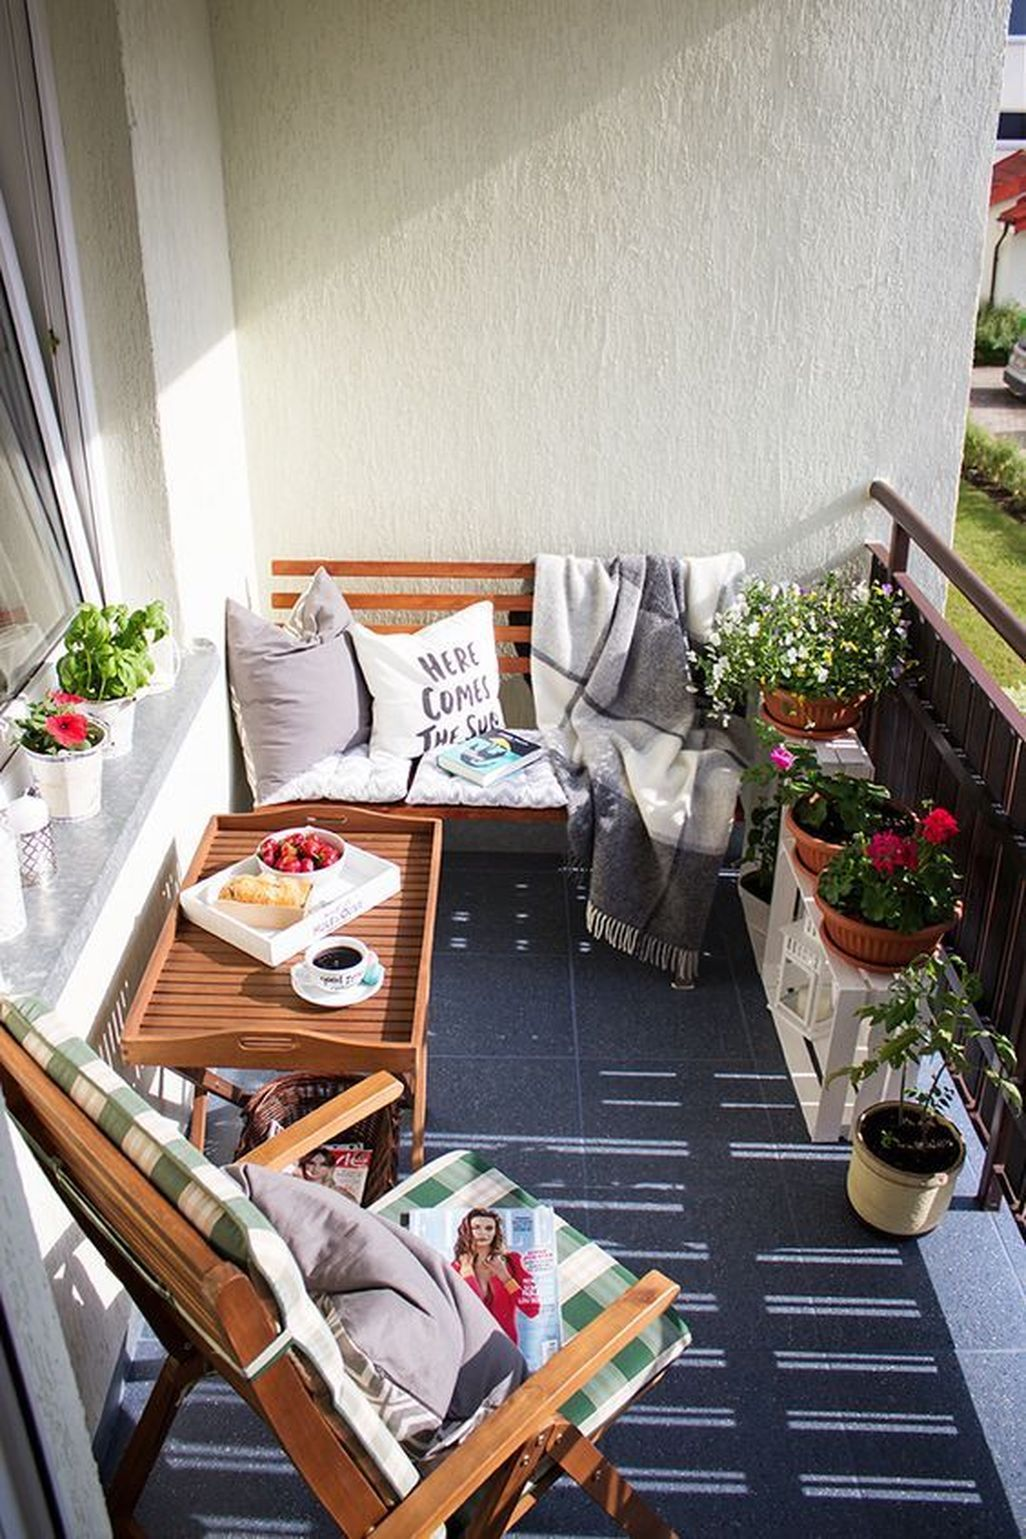 47 Modern Farmhouse Balcony You Will Definitely Want To Try is part of  - Would you not fancy a crisply decorated balcony that can be a great entertaining, cozy place midst verdant plants and […]